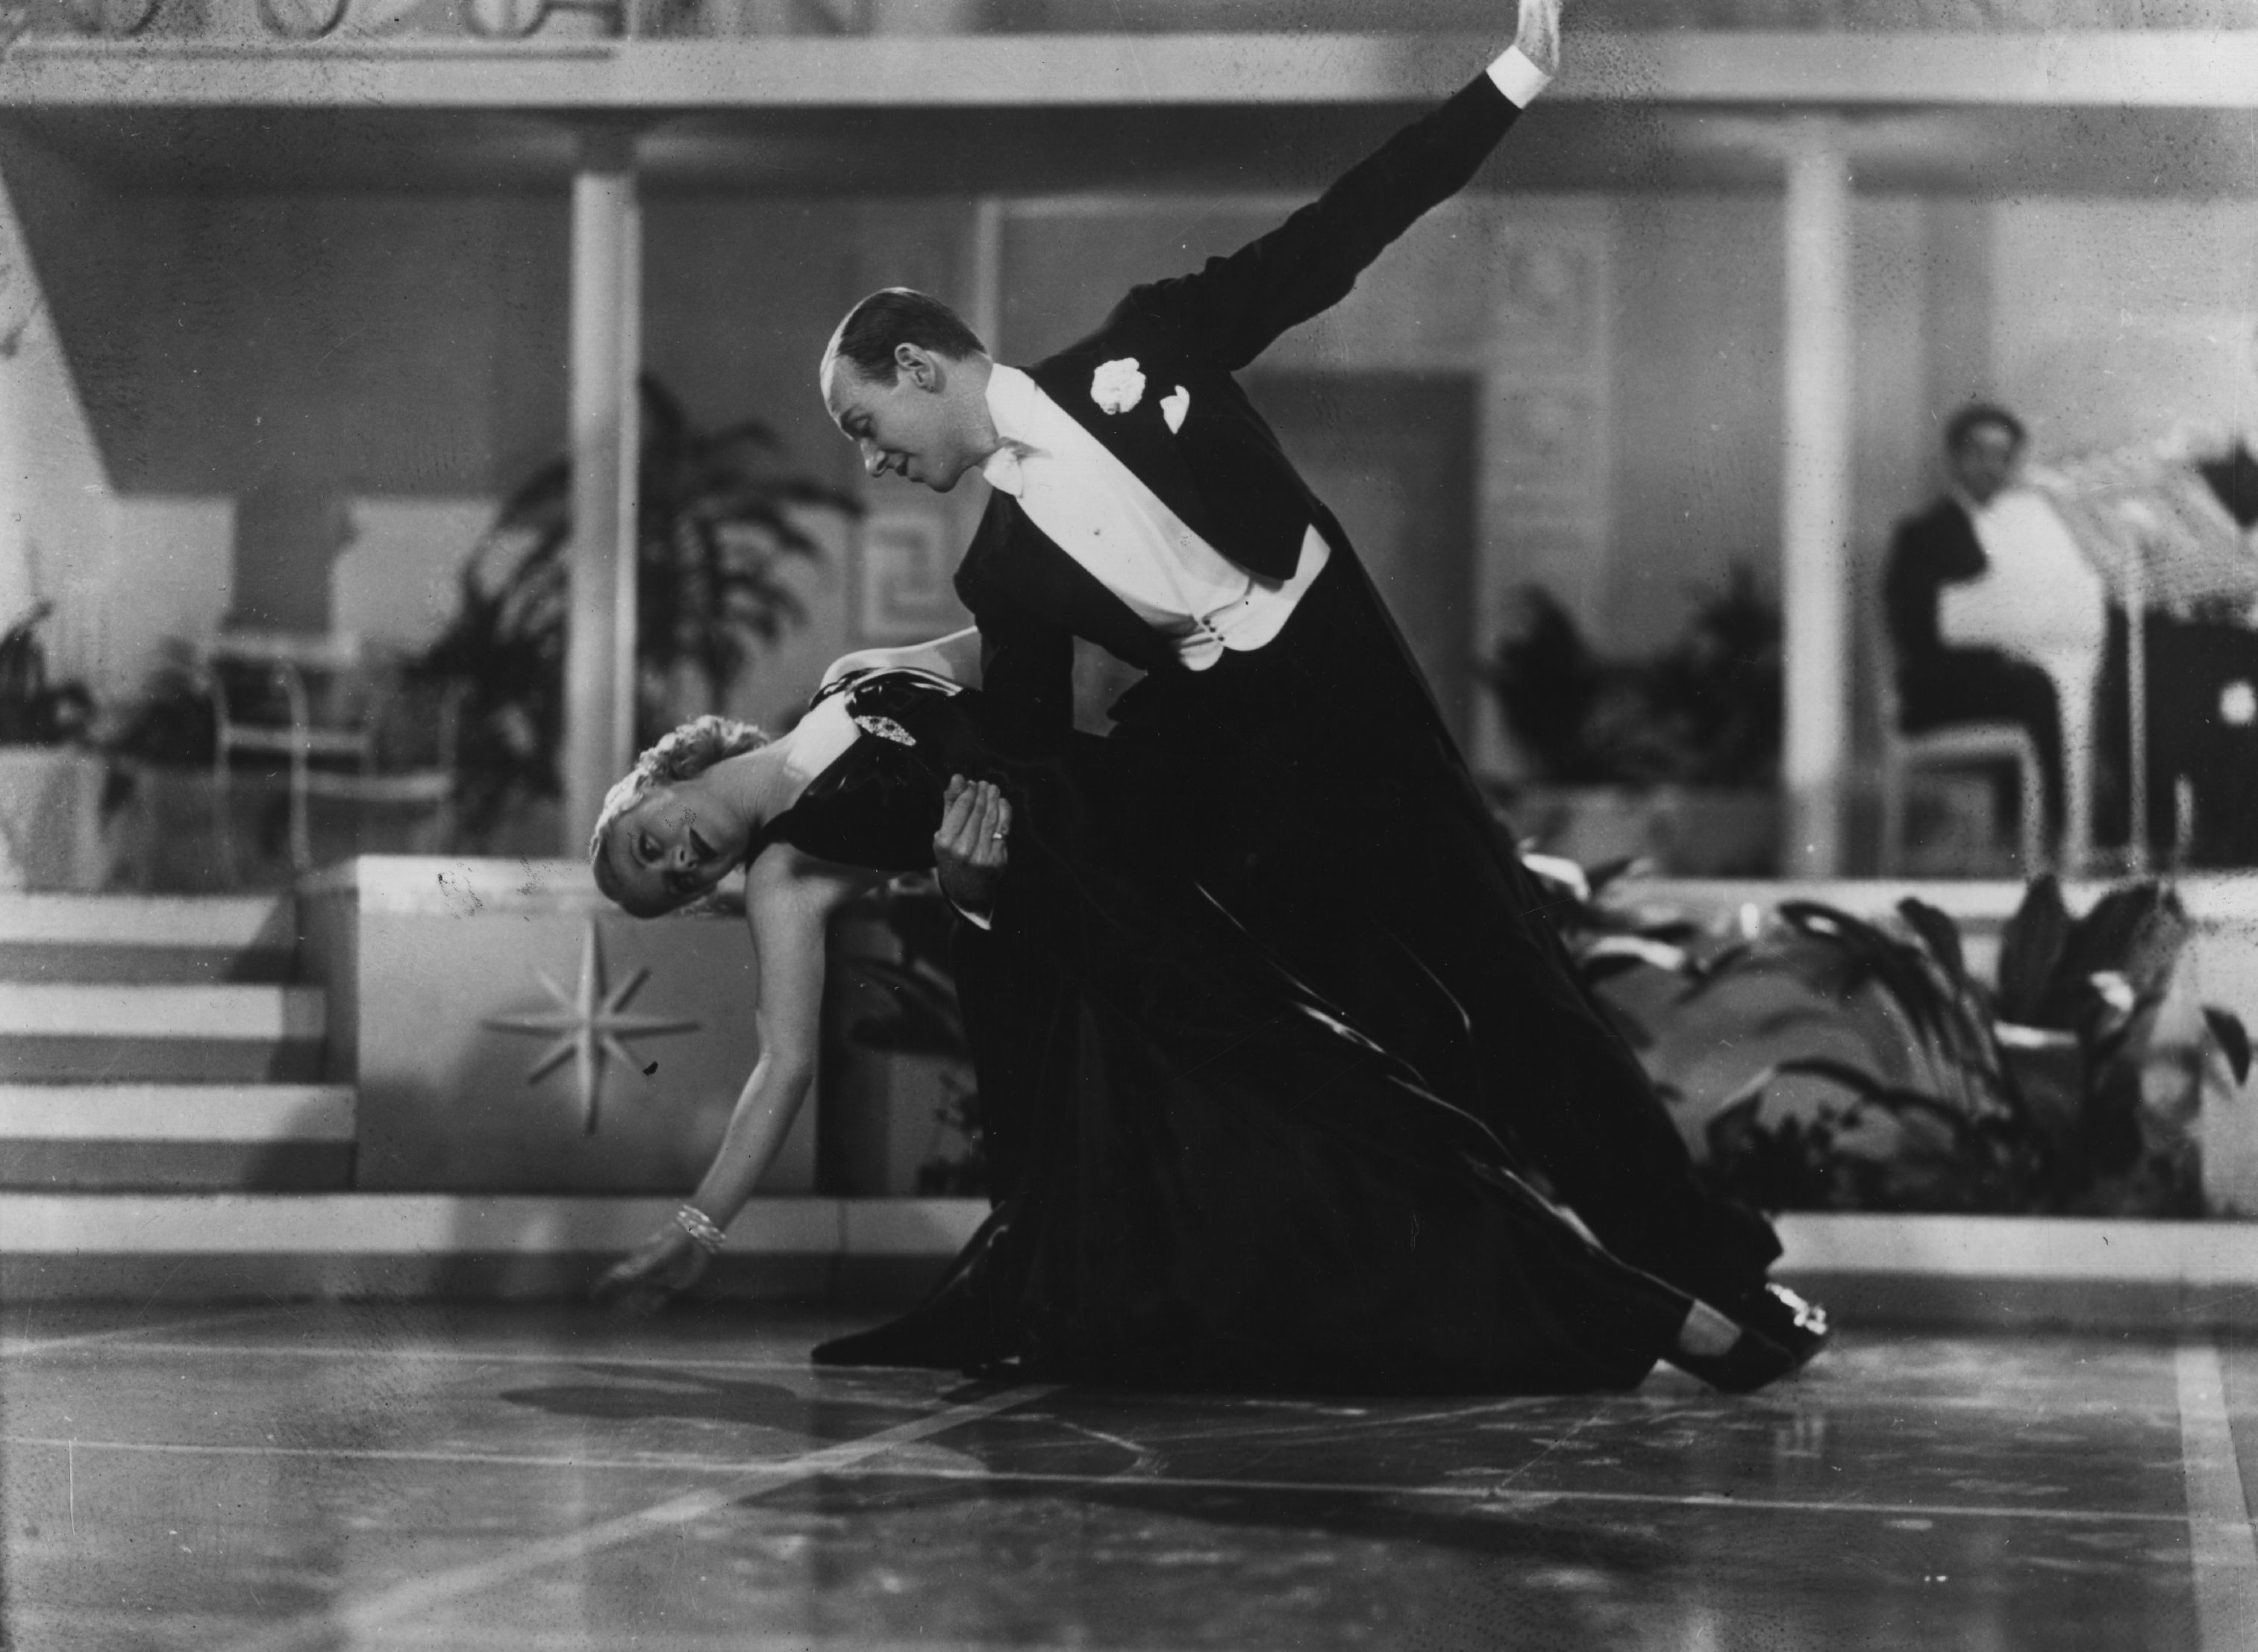 Biography of Fred Astaire, Legendary Dancer and Movie Star